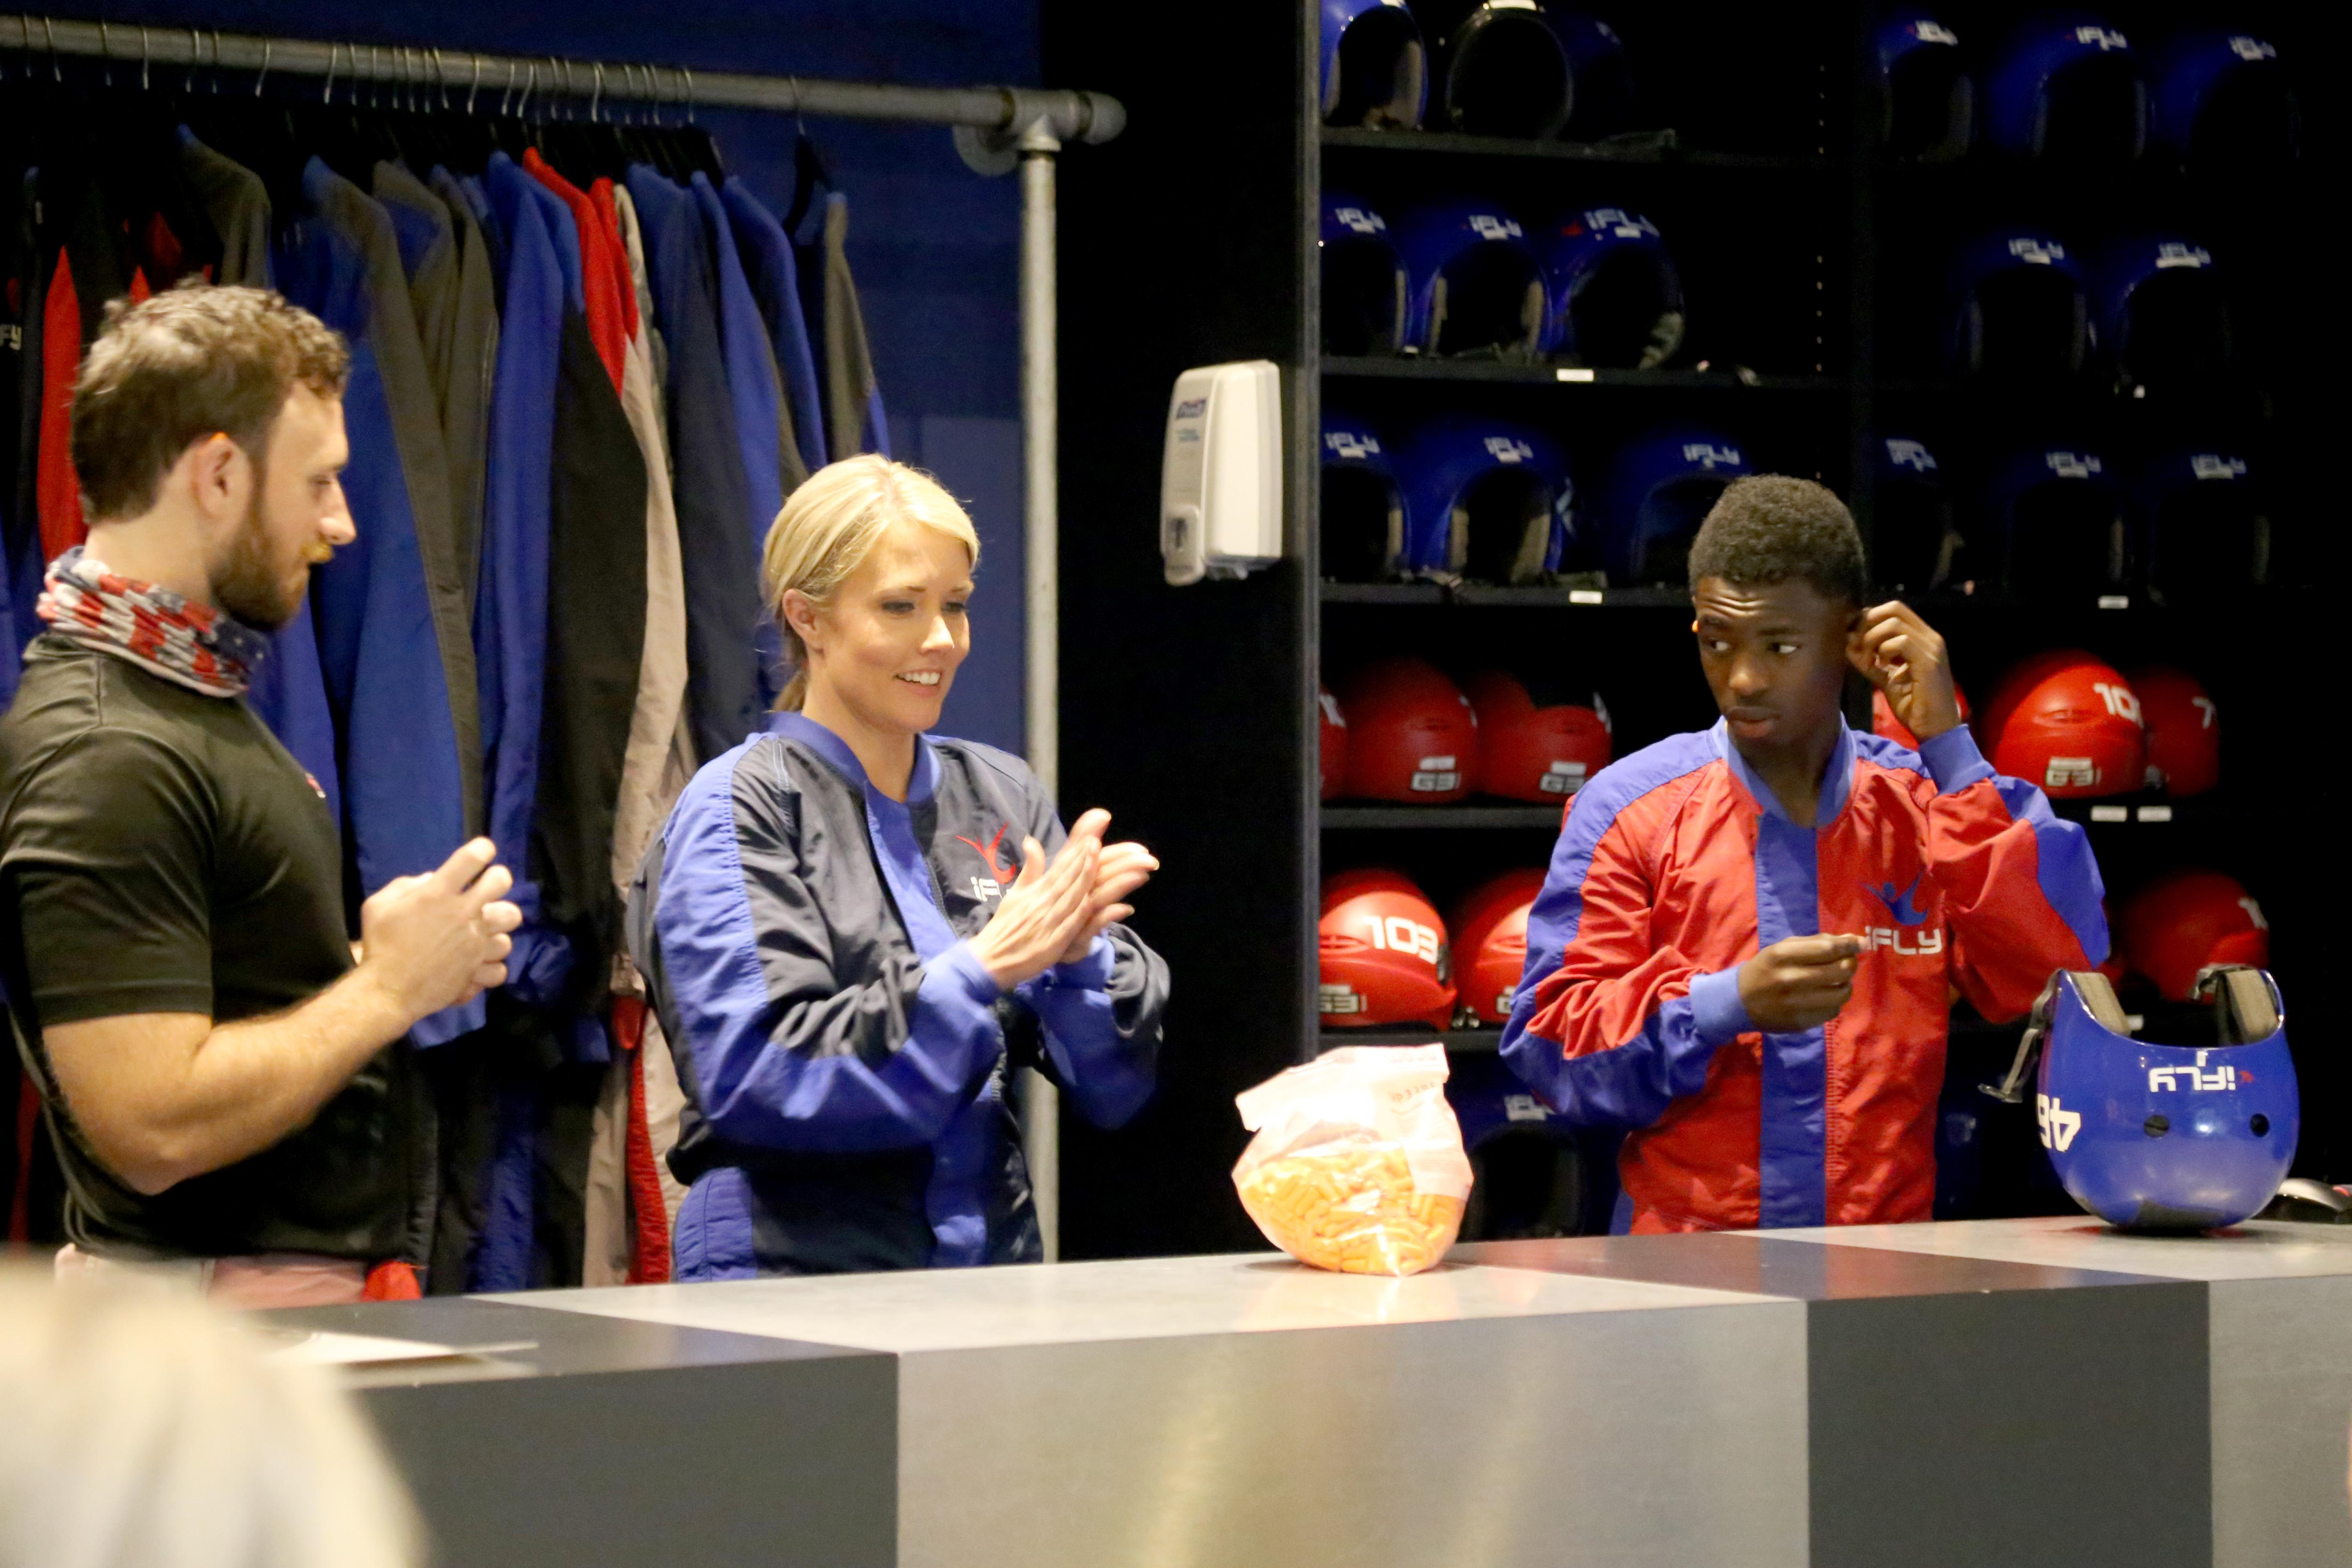 A teenager takes flight and tells us what makes his dreams soar. 15-year-old Devion made a few new friends and the memory of a lifetime at iFLY in Austin, an in-door skydiving experience. (Photo courtesy: Heart Gallery of Central Texas, a program of Partnerships for Children)